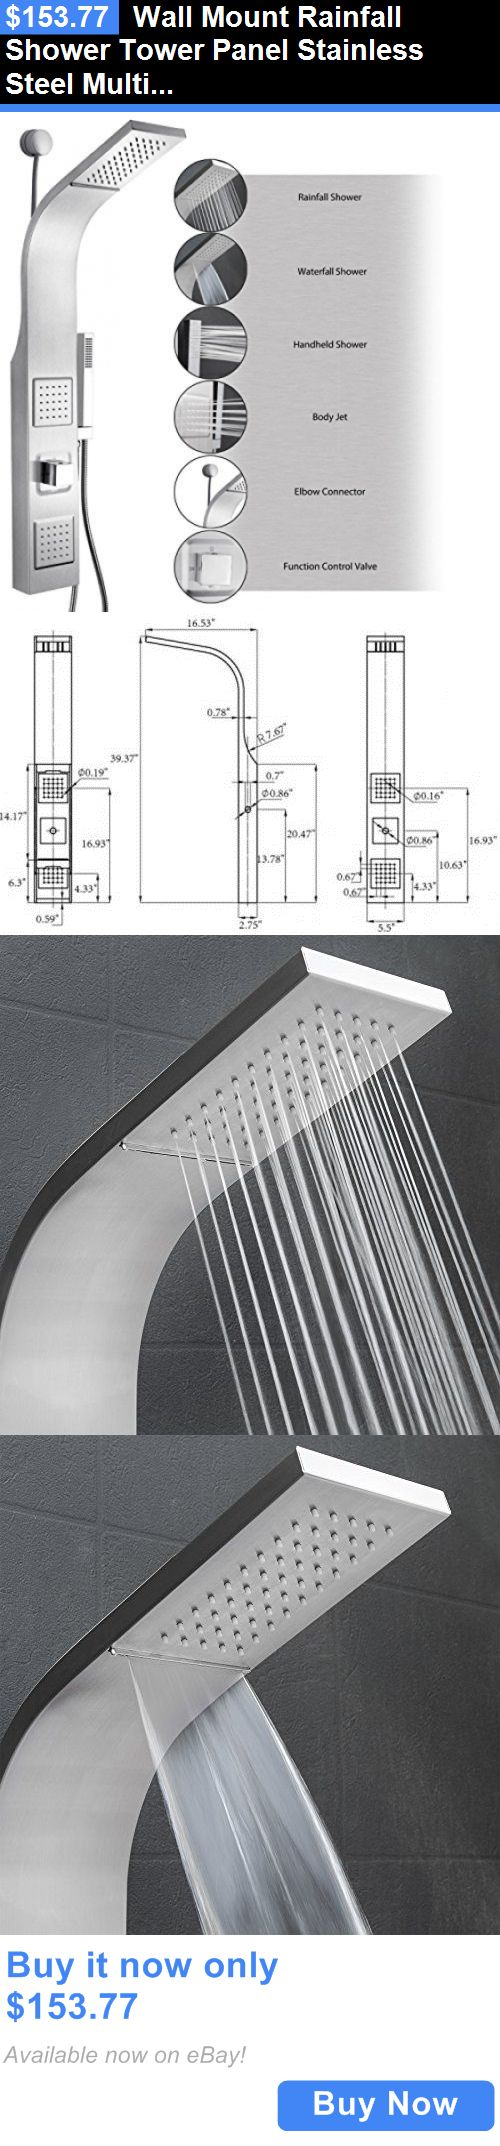 Massagers: Wall Mount Rainfall Shower Tower Panel Stainless Steel Multi-Function Massage BUY IT NOW ONLY: $153.77